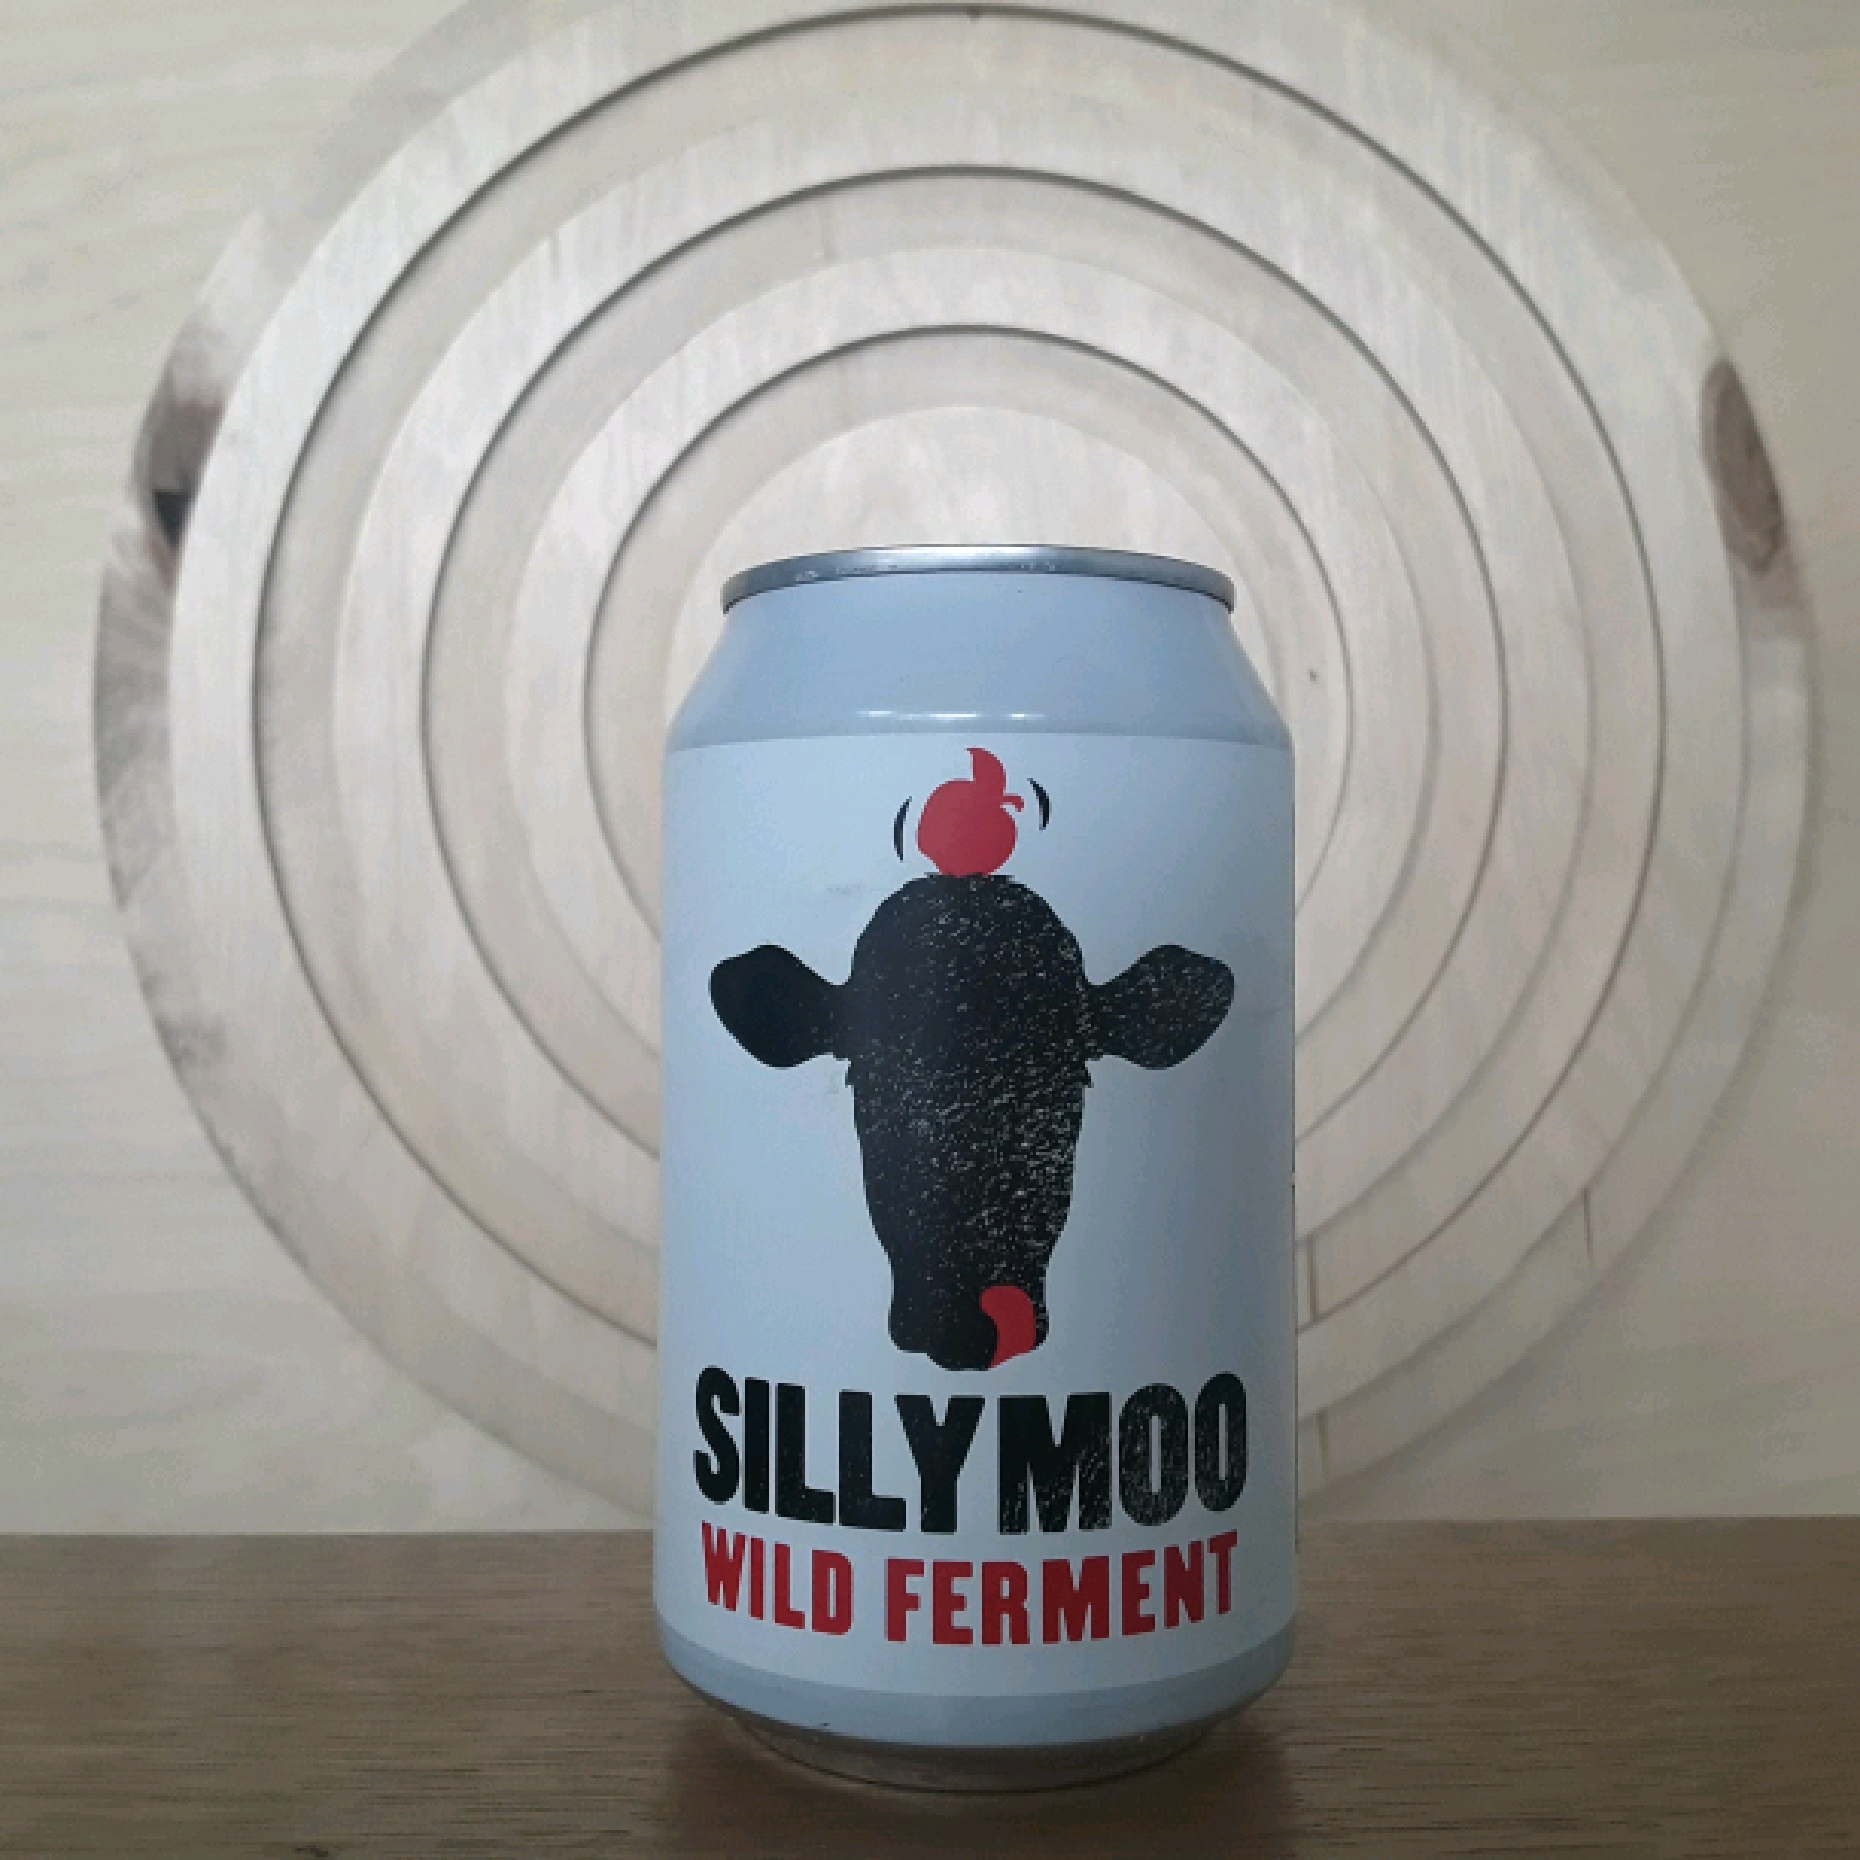 Silly Moo Wild Ferment Cider